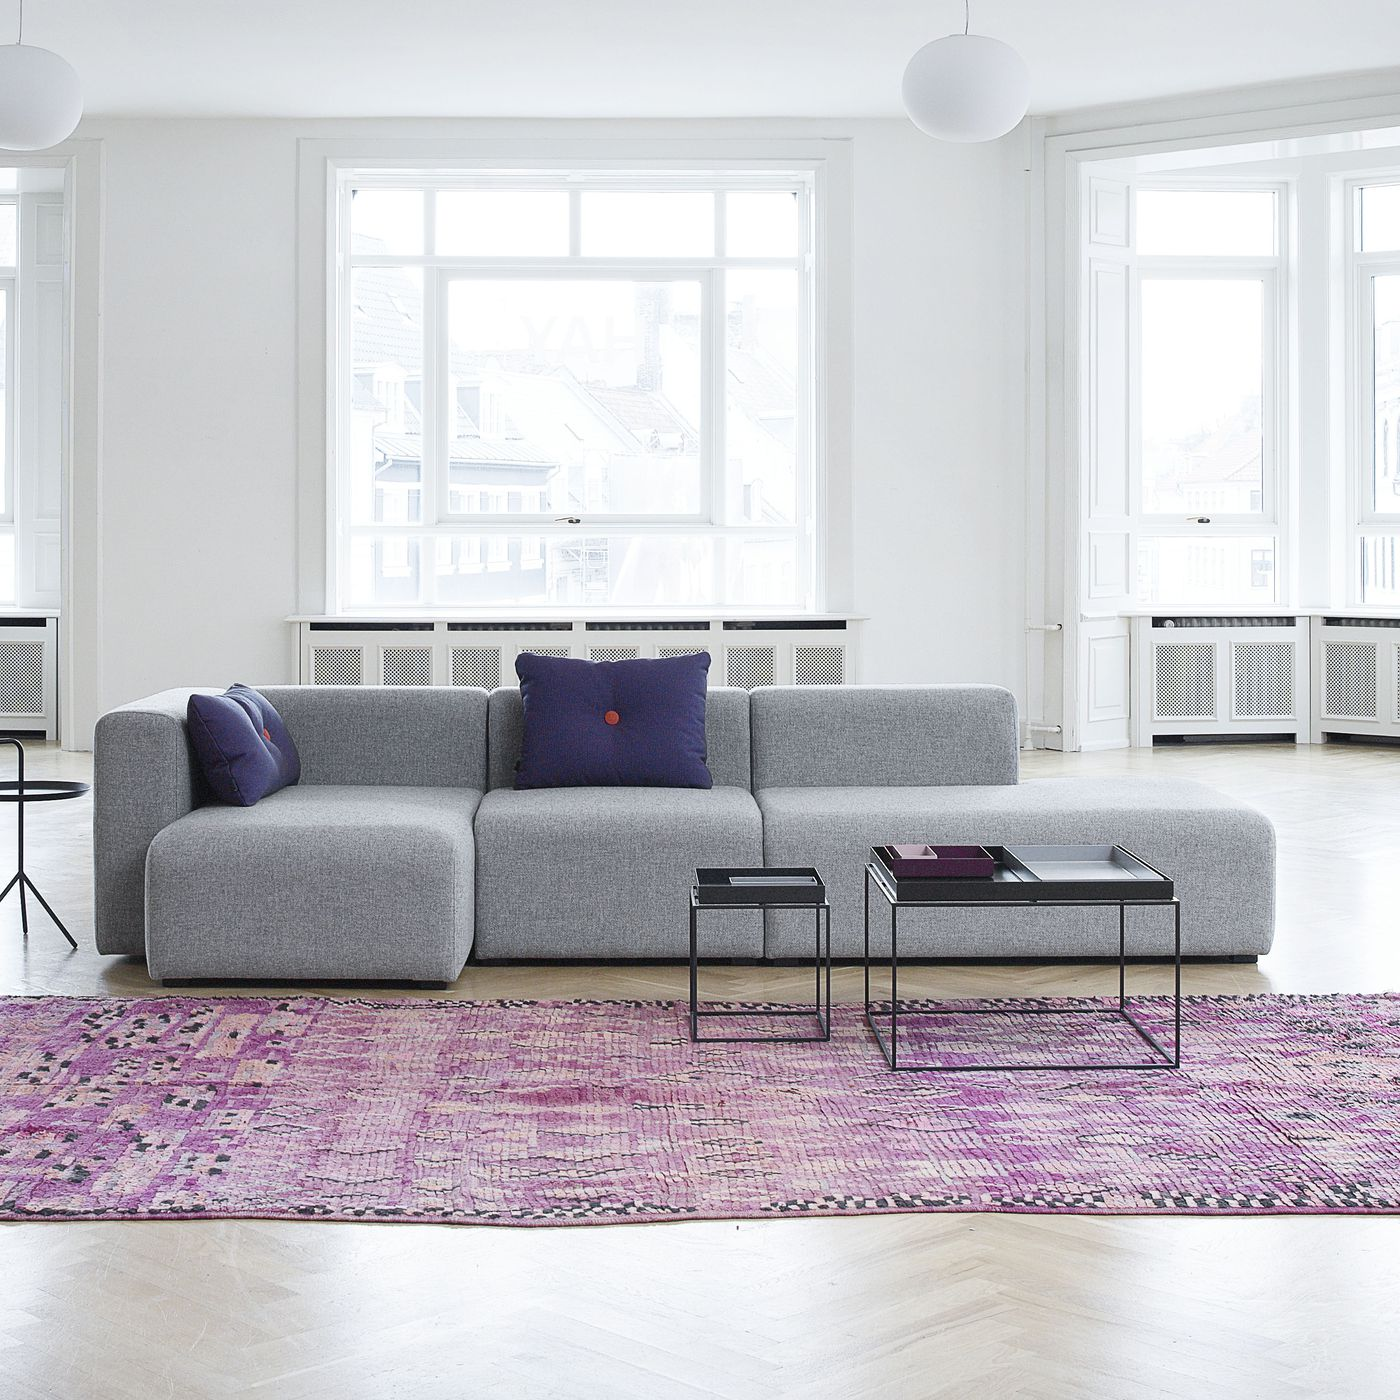 House Of Denmark Furniture Prices